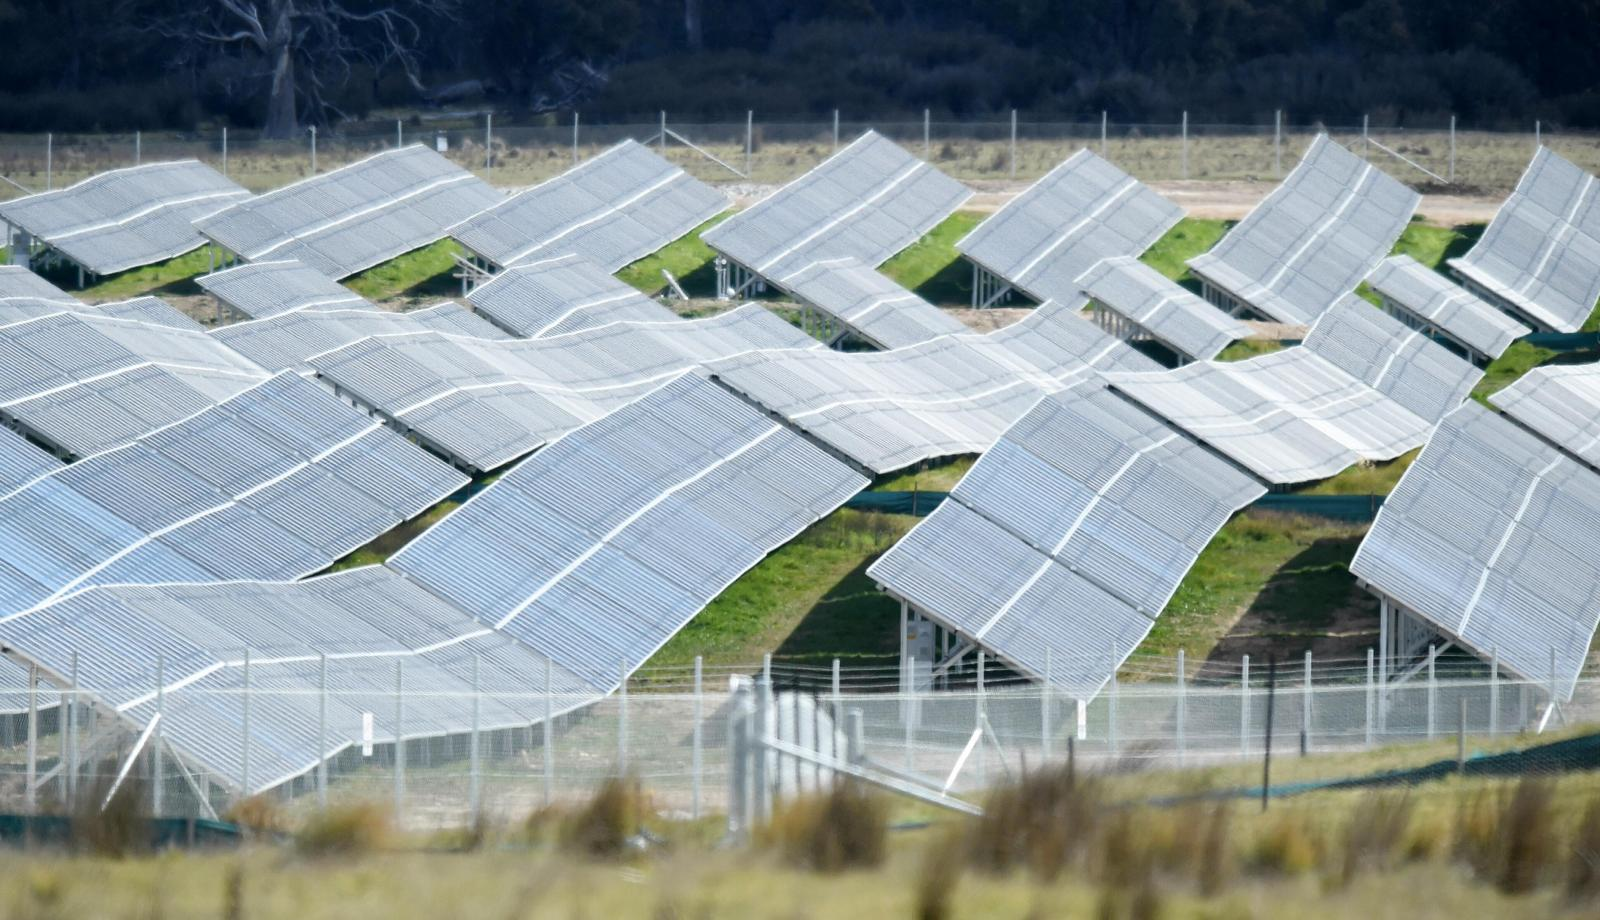 Support grows for Numurkah solar farm